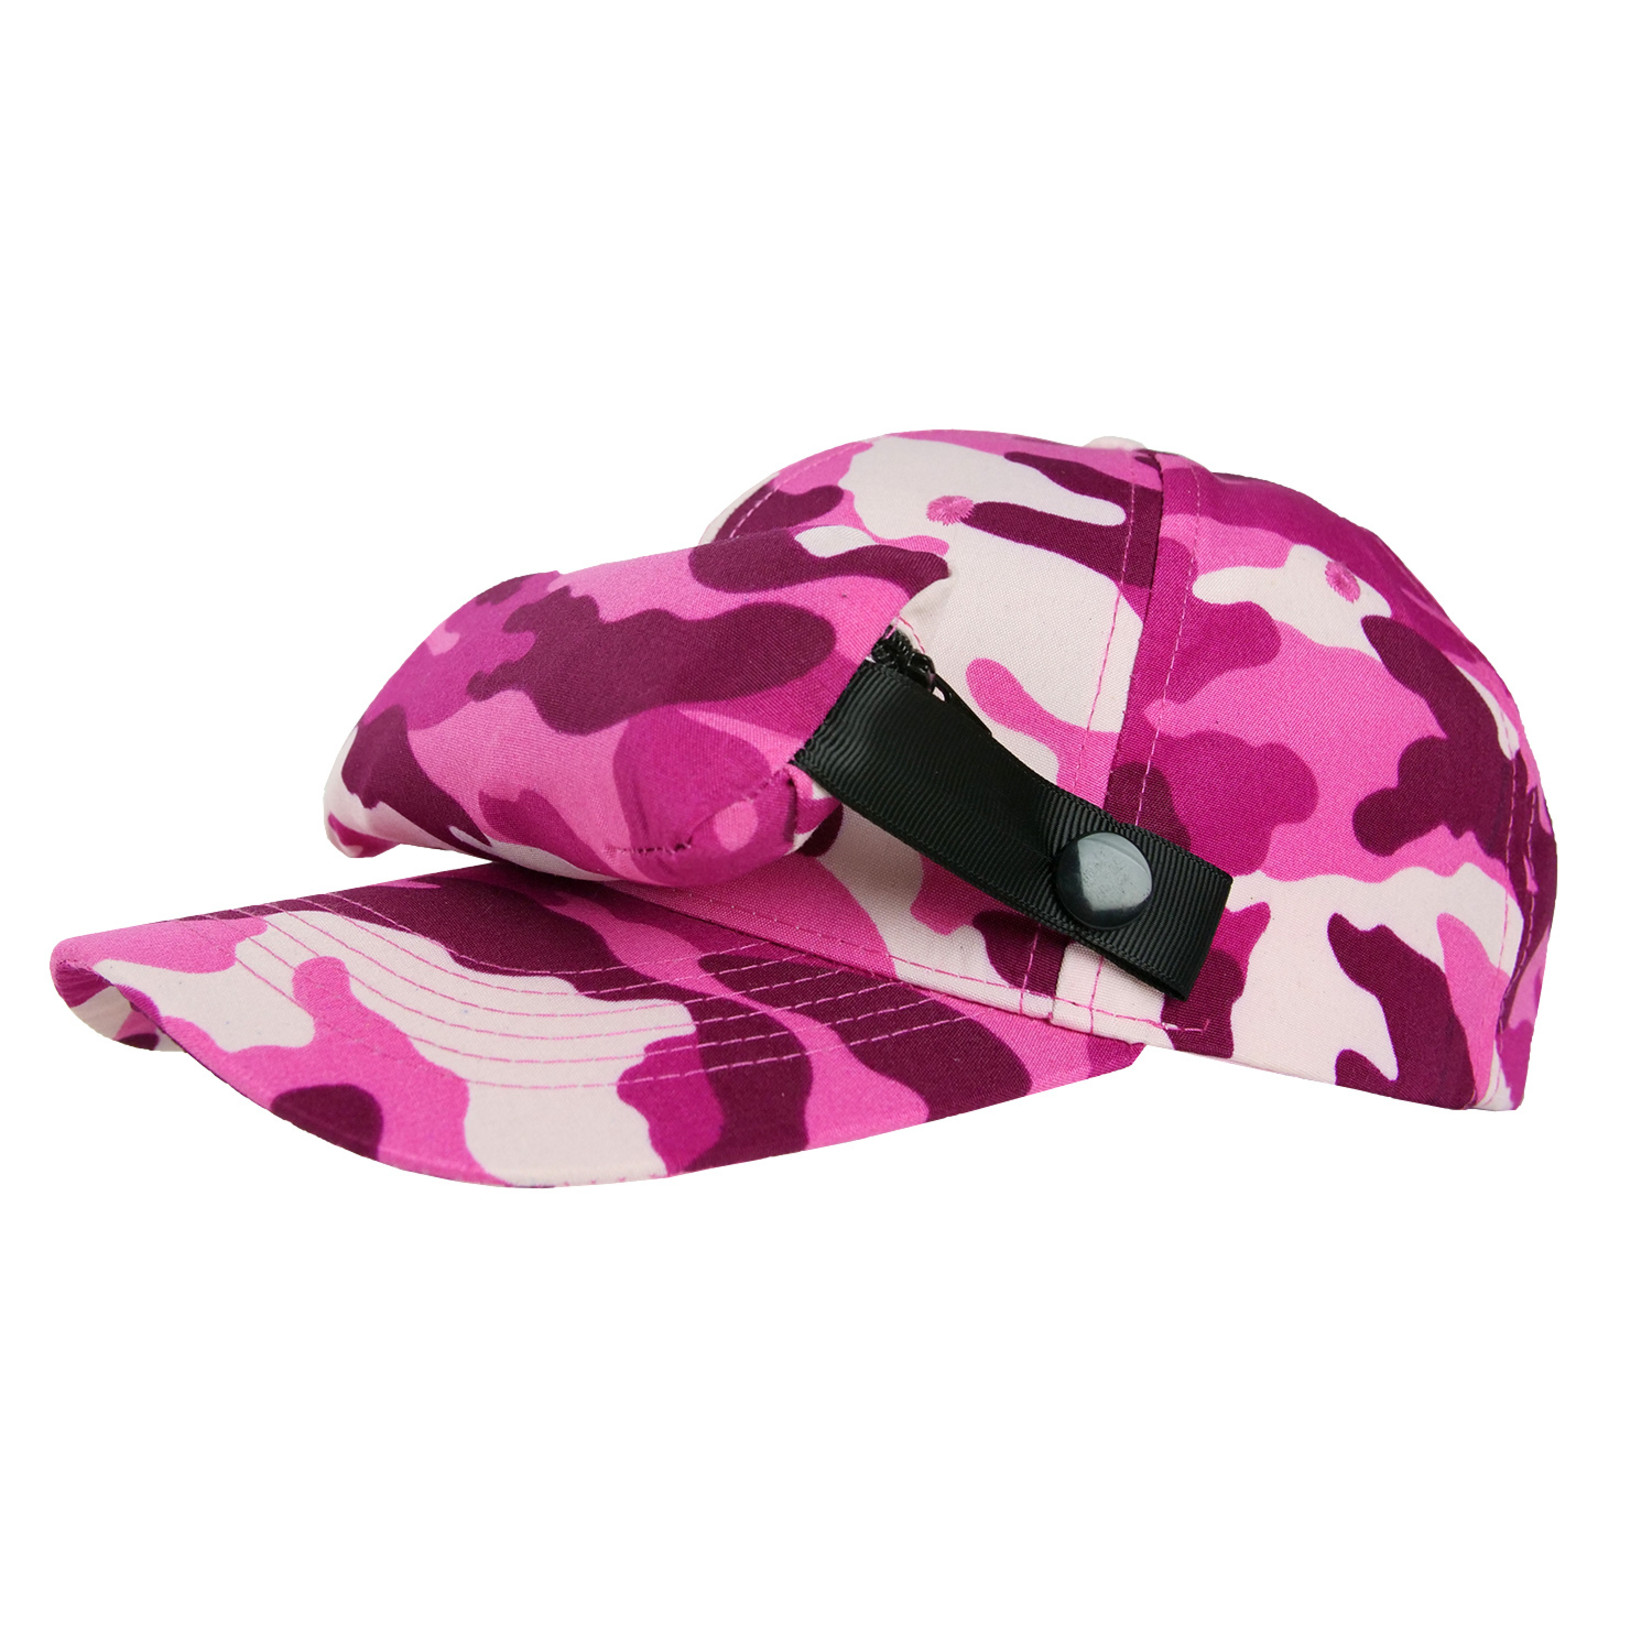 LittleFly BUG CAP pink camo - once size